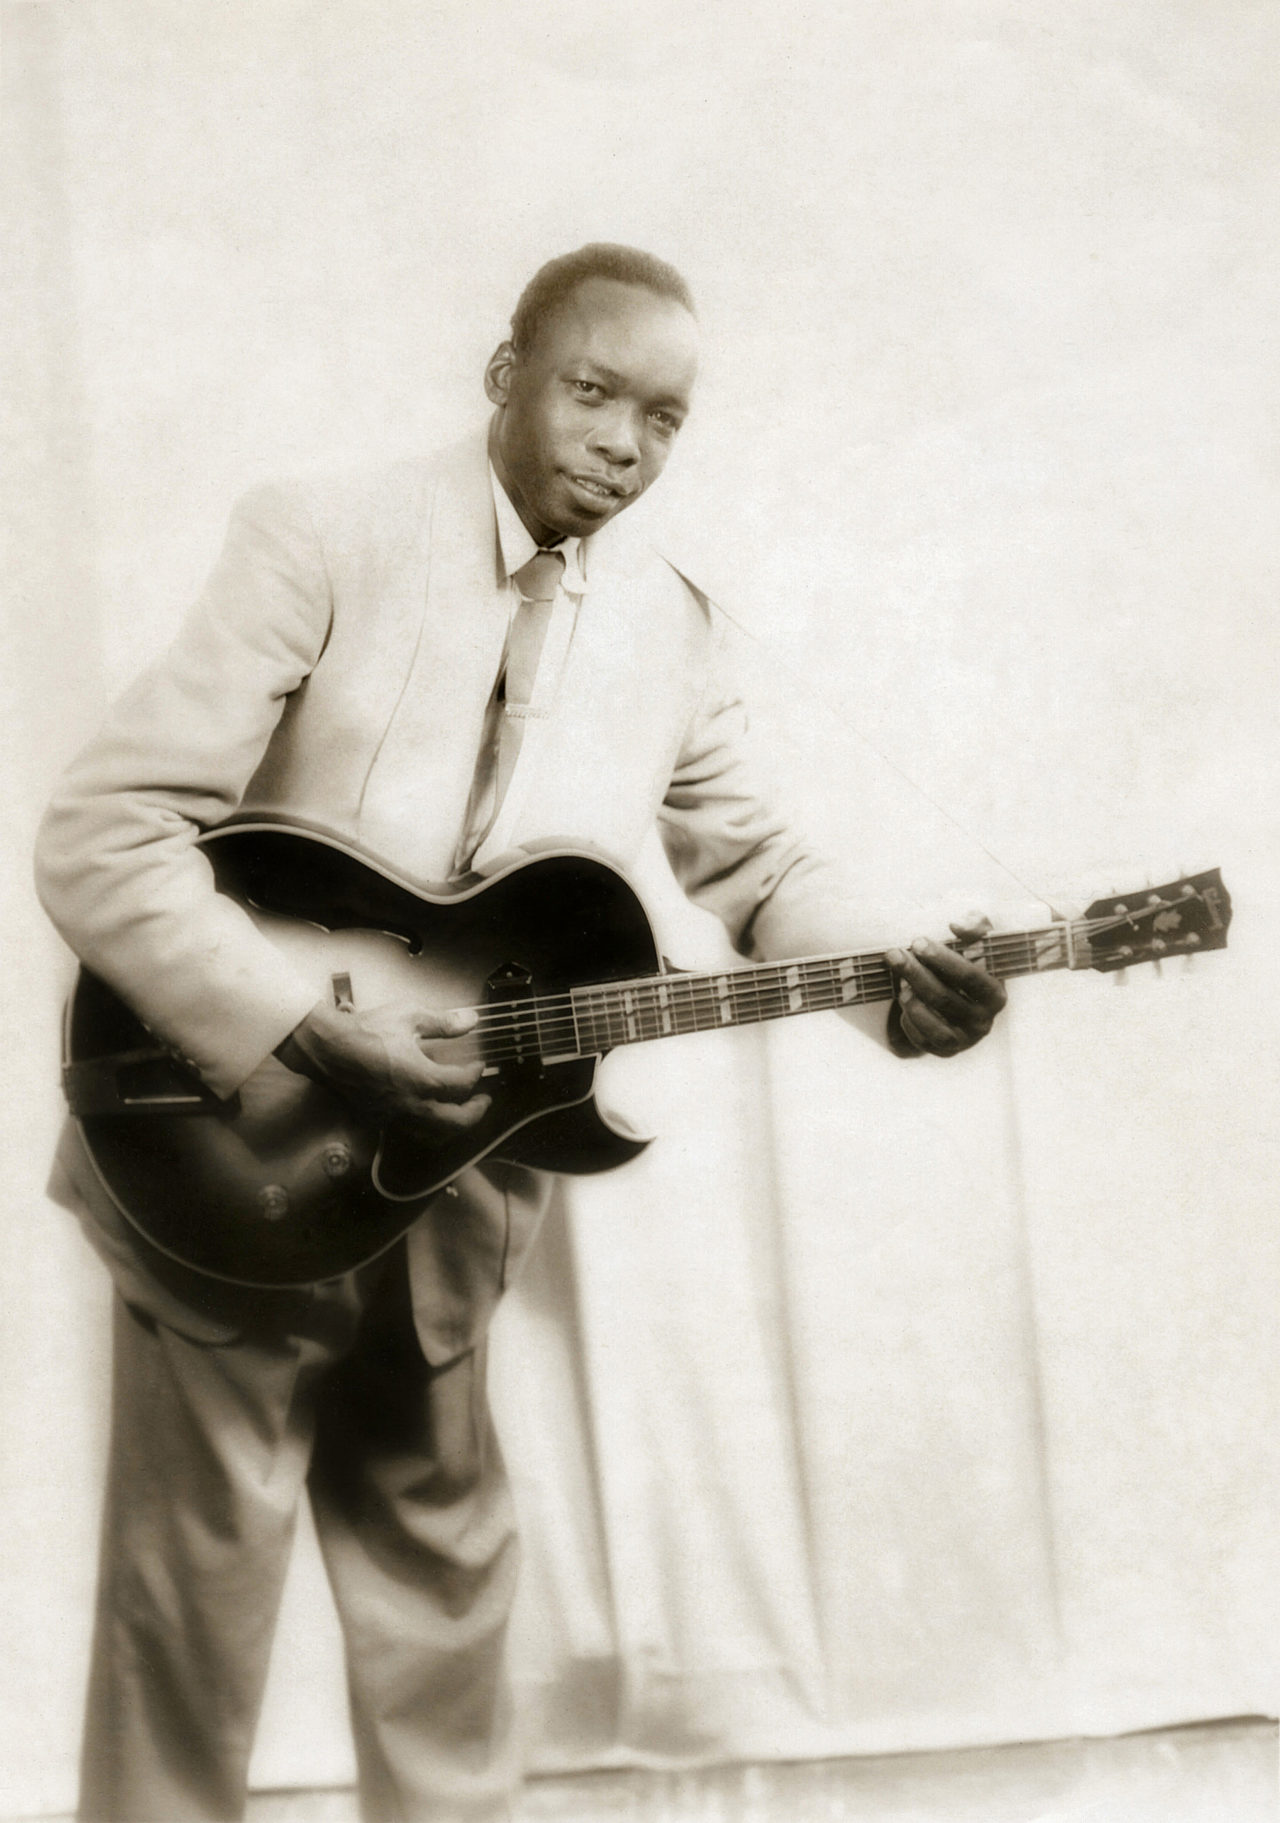 Publicity Still Of John Lee Hooker